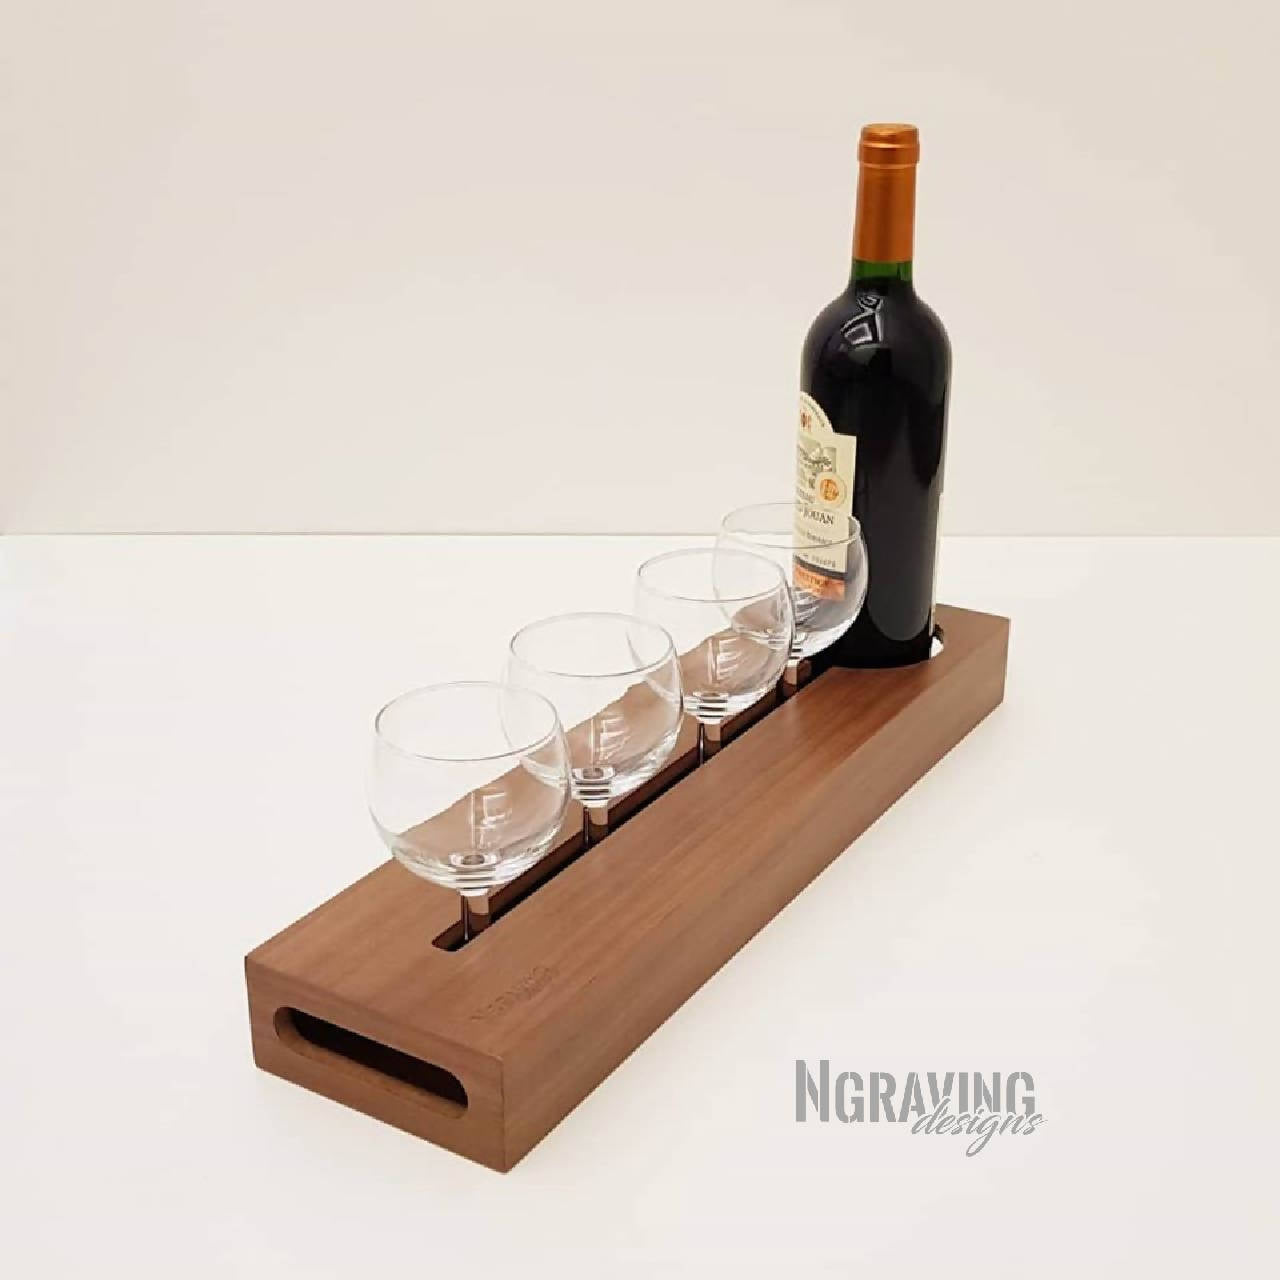 Custom-made bottle & glass stand design. BOTTLE & GLASSES NOT INCLUDED.